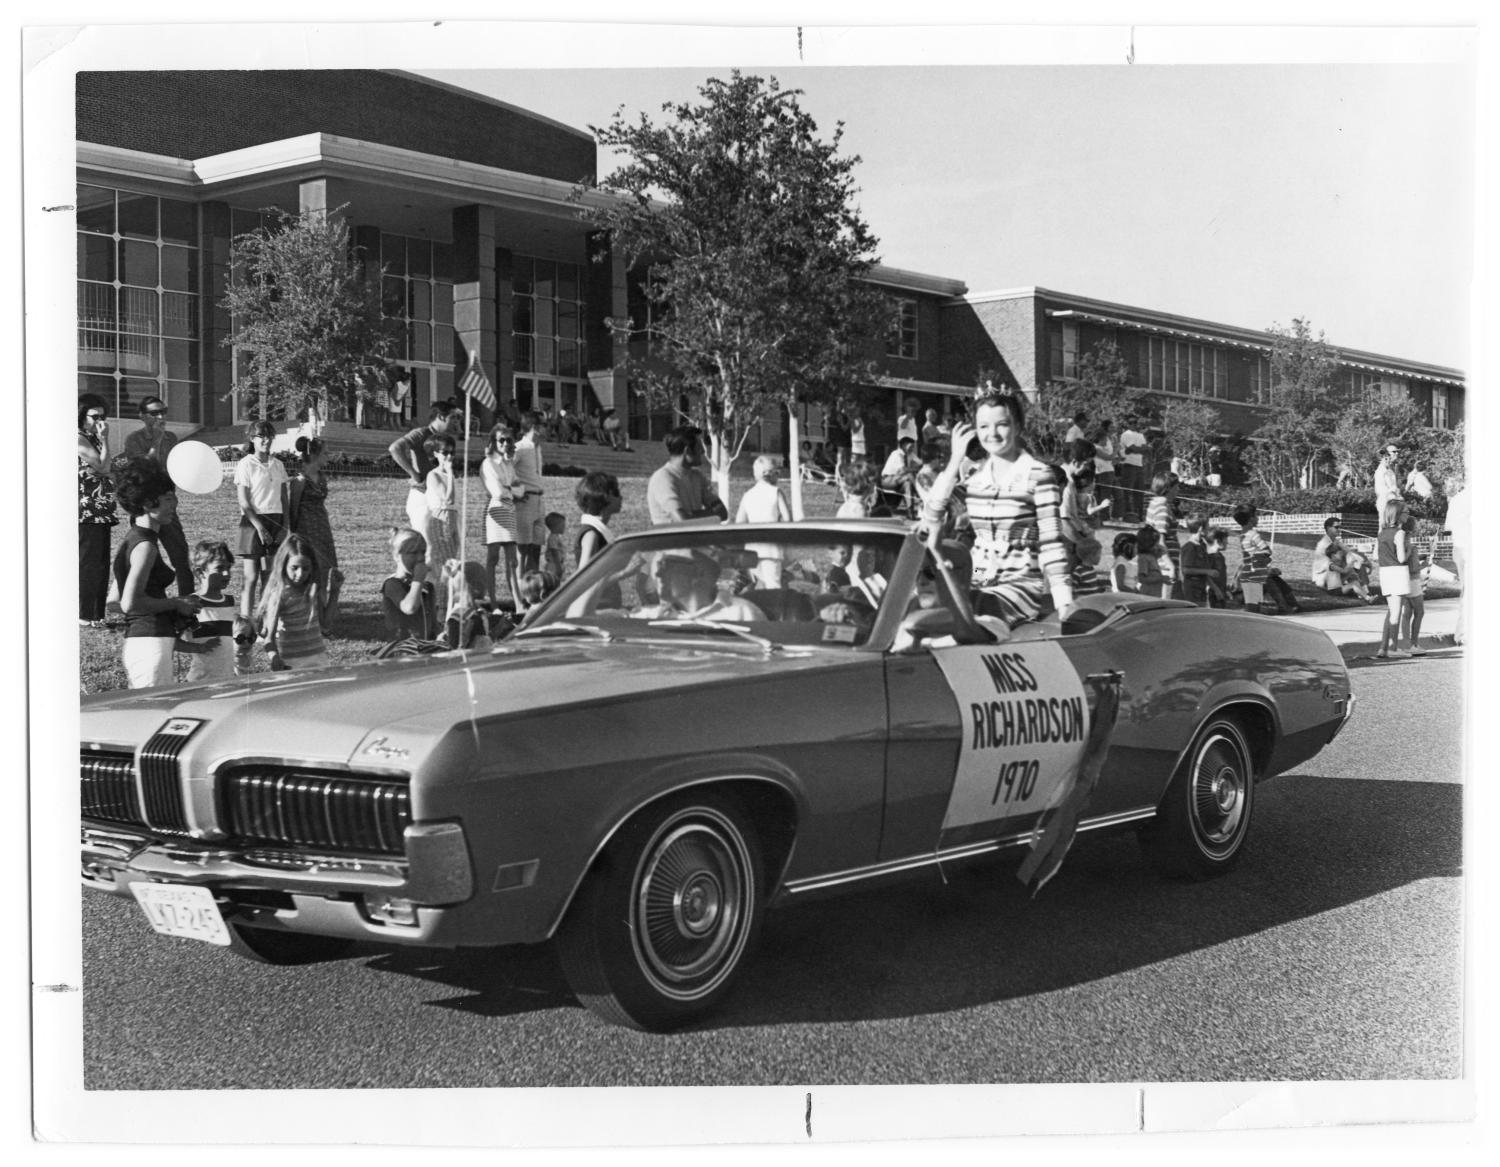 """Fourth of July Parade, Photograph of a young woman sitting on the back of a convertible car in a parade on Beltline Road, in front of Richardson High School. She is wearing a striped dress and a crown. A sign on the side of the cars says """"Miss Richardson 1970."""" In the background, there is a group of people on the yard of the high school.,"""